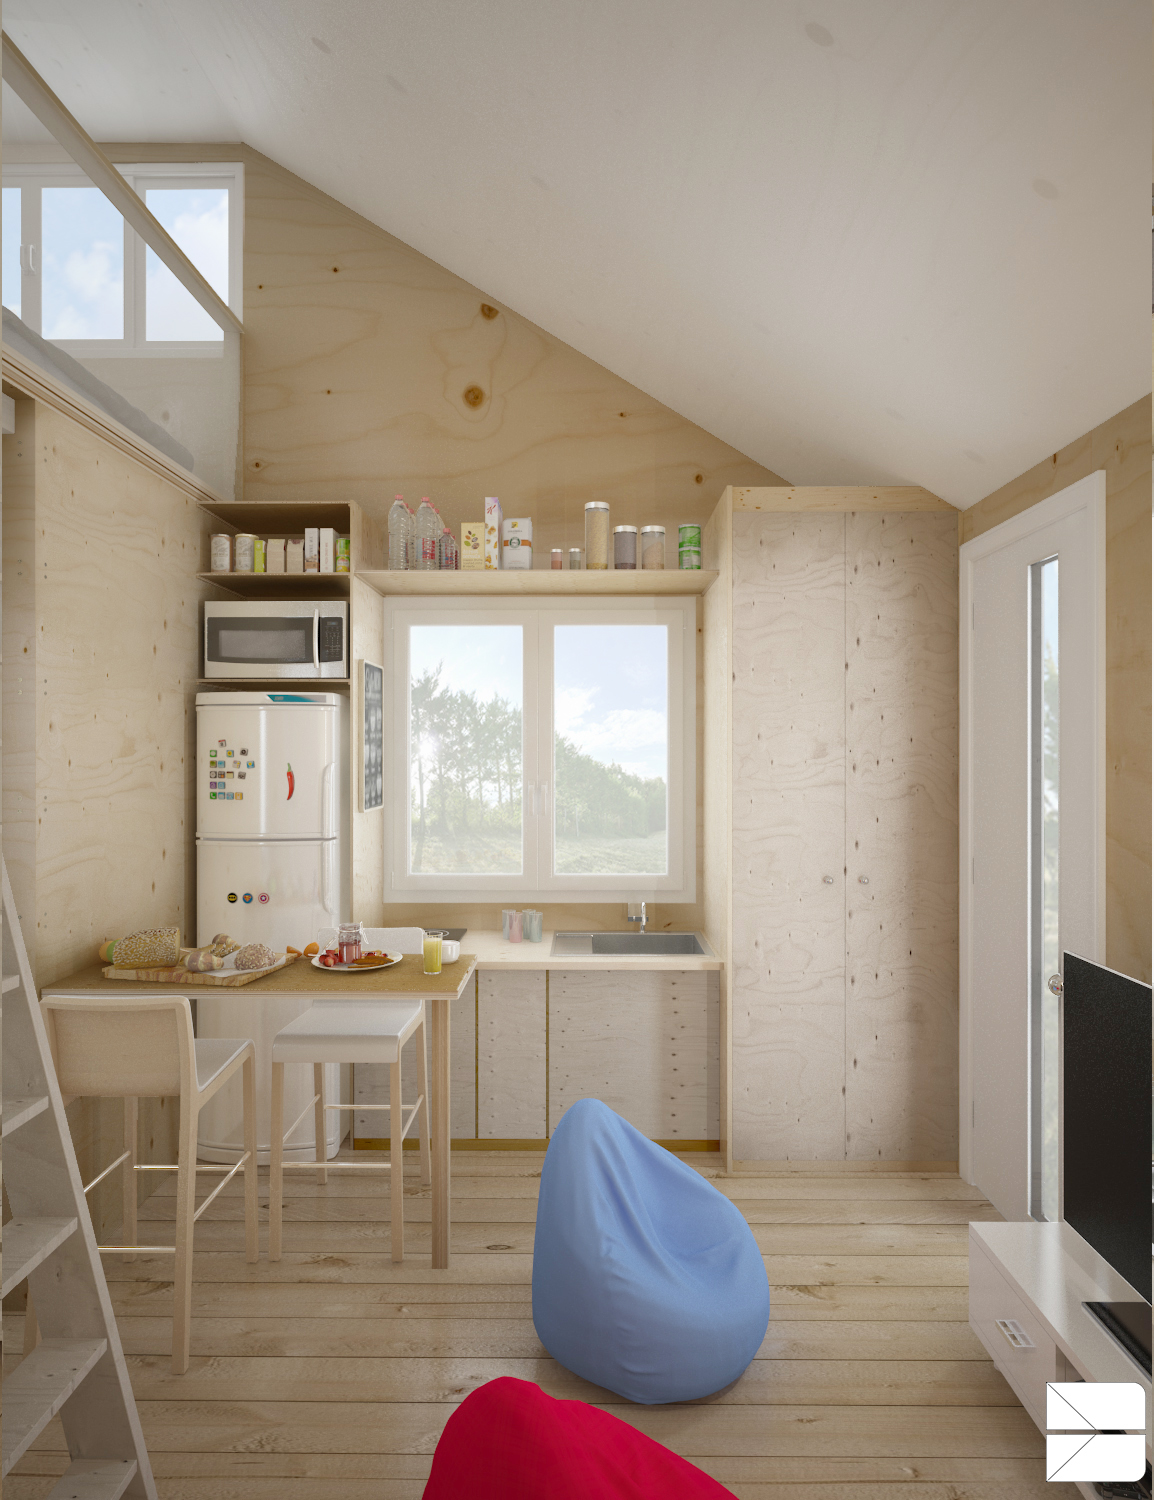 designing for super small spaces 5 micro apartments - Apartment Design For Small Spaces